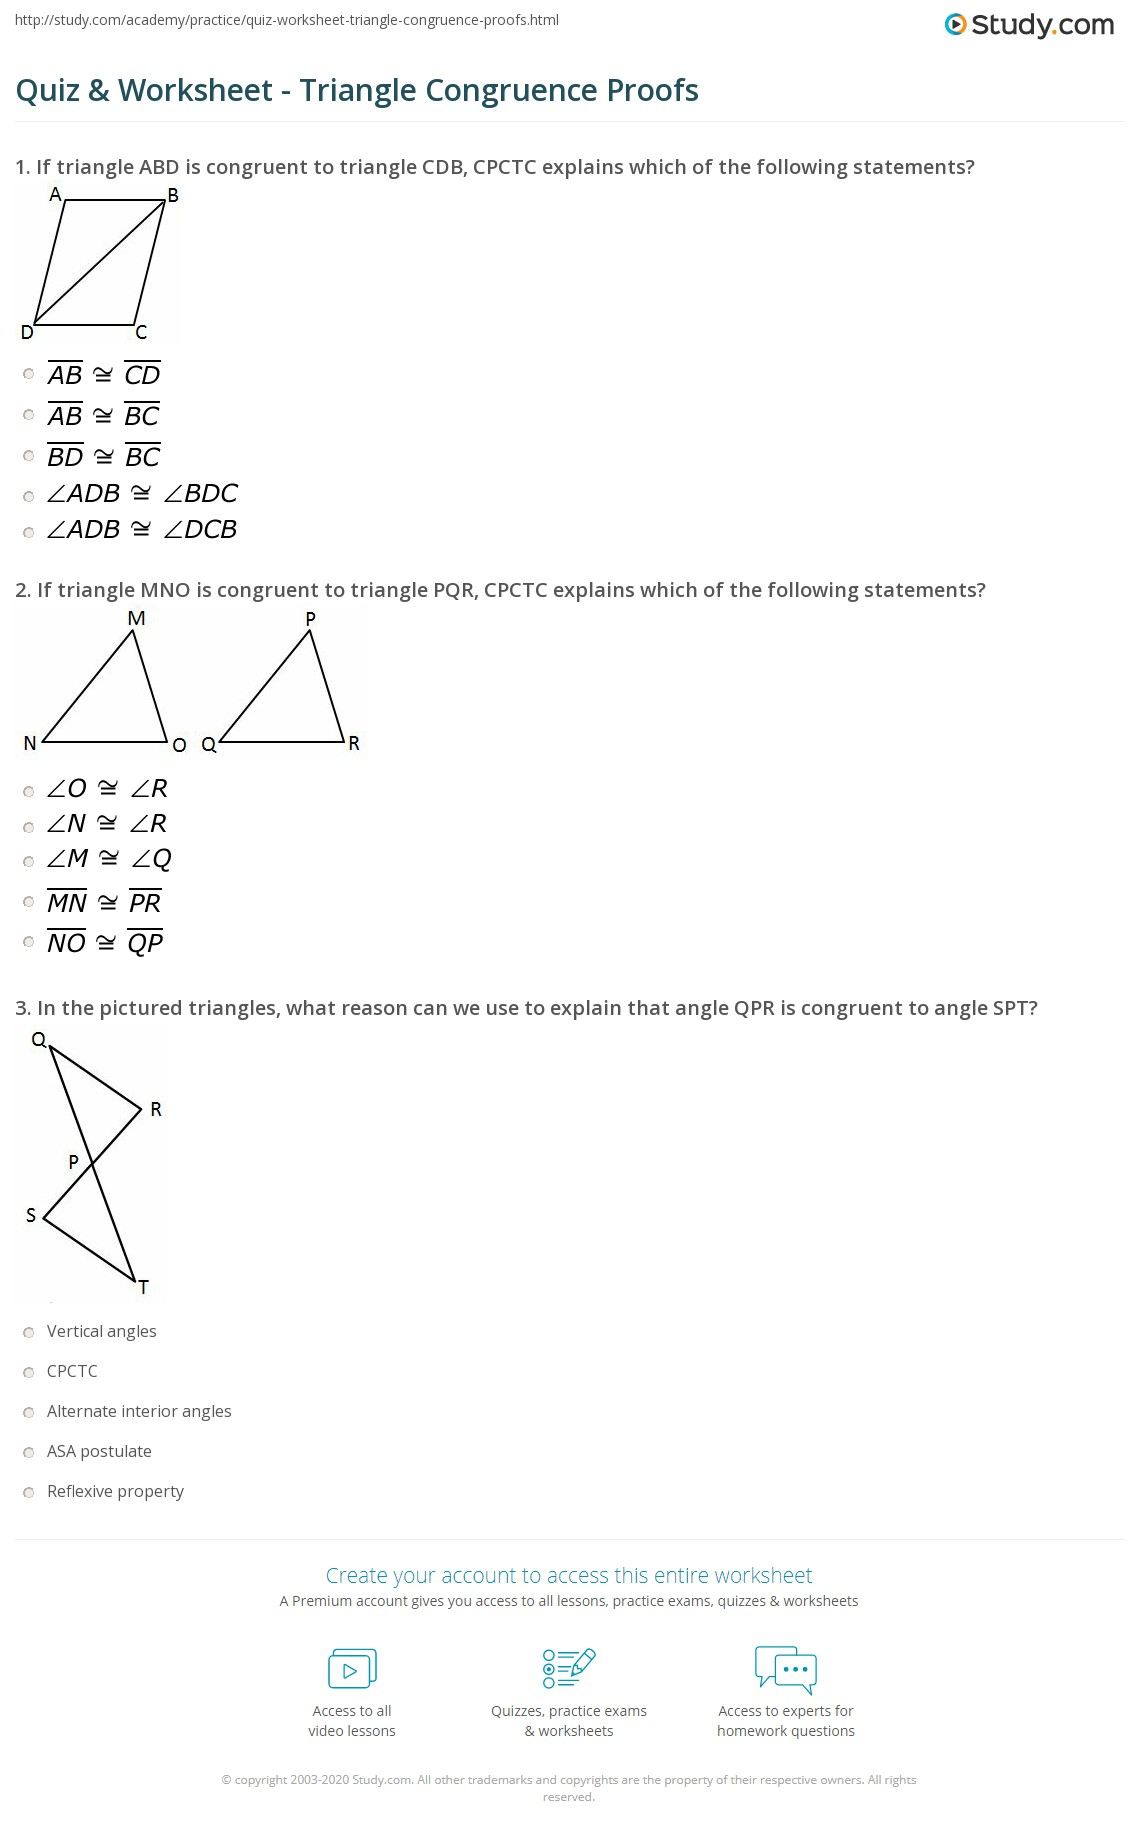 Triangle Congruence Proofs Worksheet: Quiz & Worksheet   Triangle Congruence Proofs   Study com,